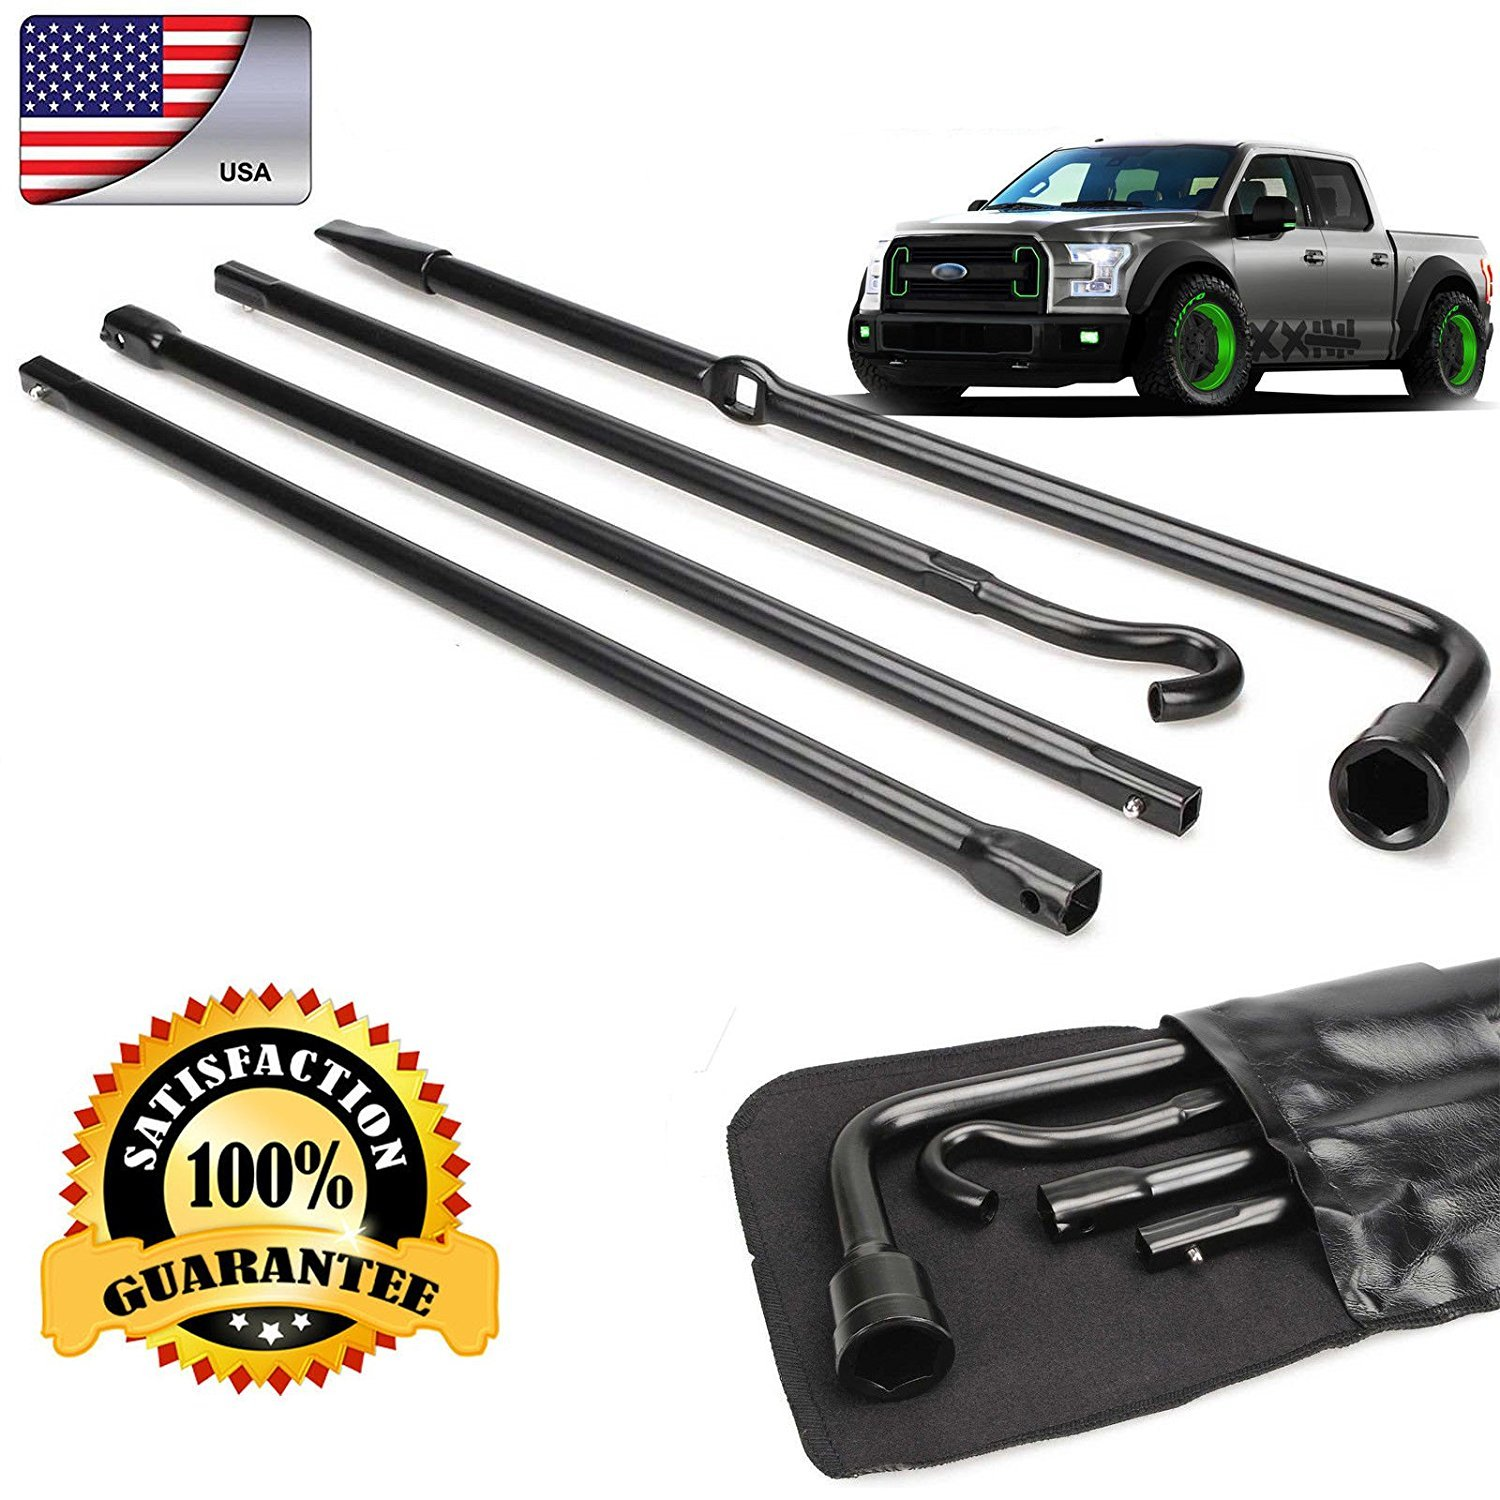 Cheap Tire Changing Jack Find Tire Changing Jack Deals On Line At